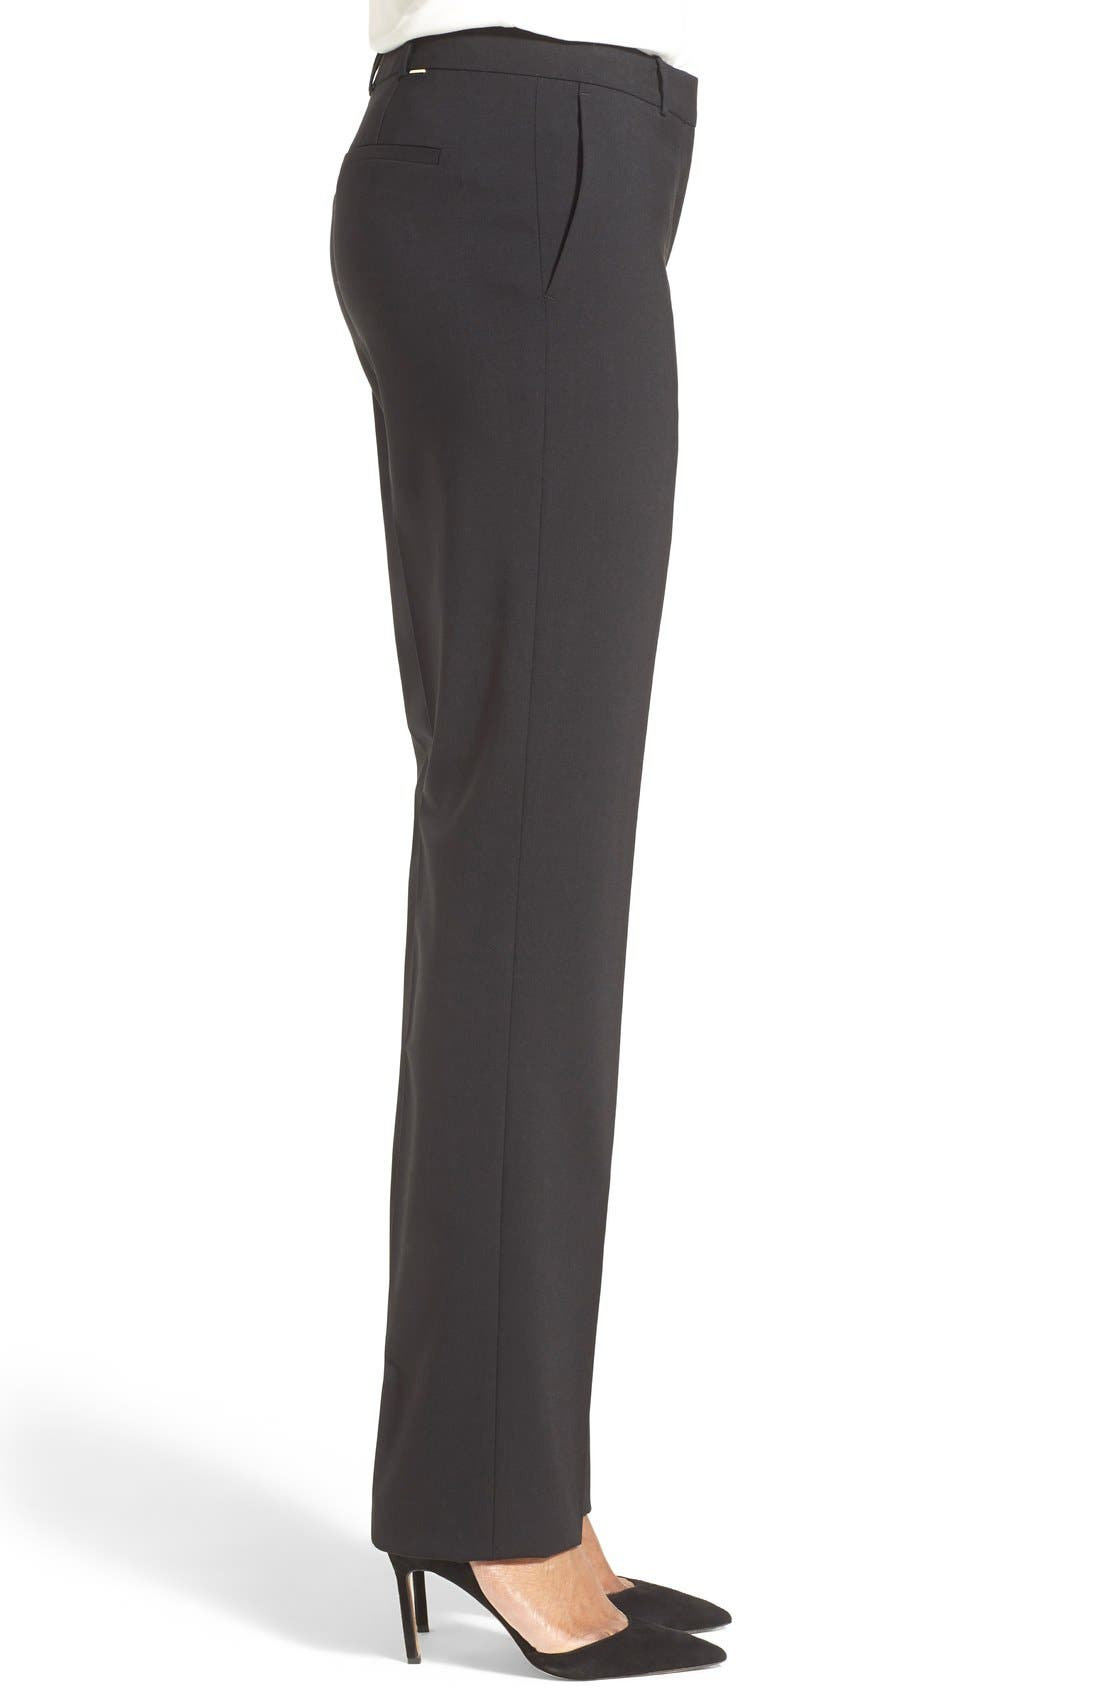 Tamea Tropical Stretch Wool Trousers,                             Alternate thumbnail 11, color,                             BLACK